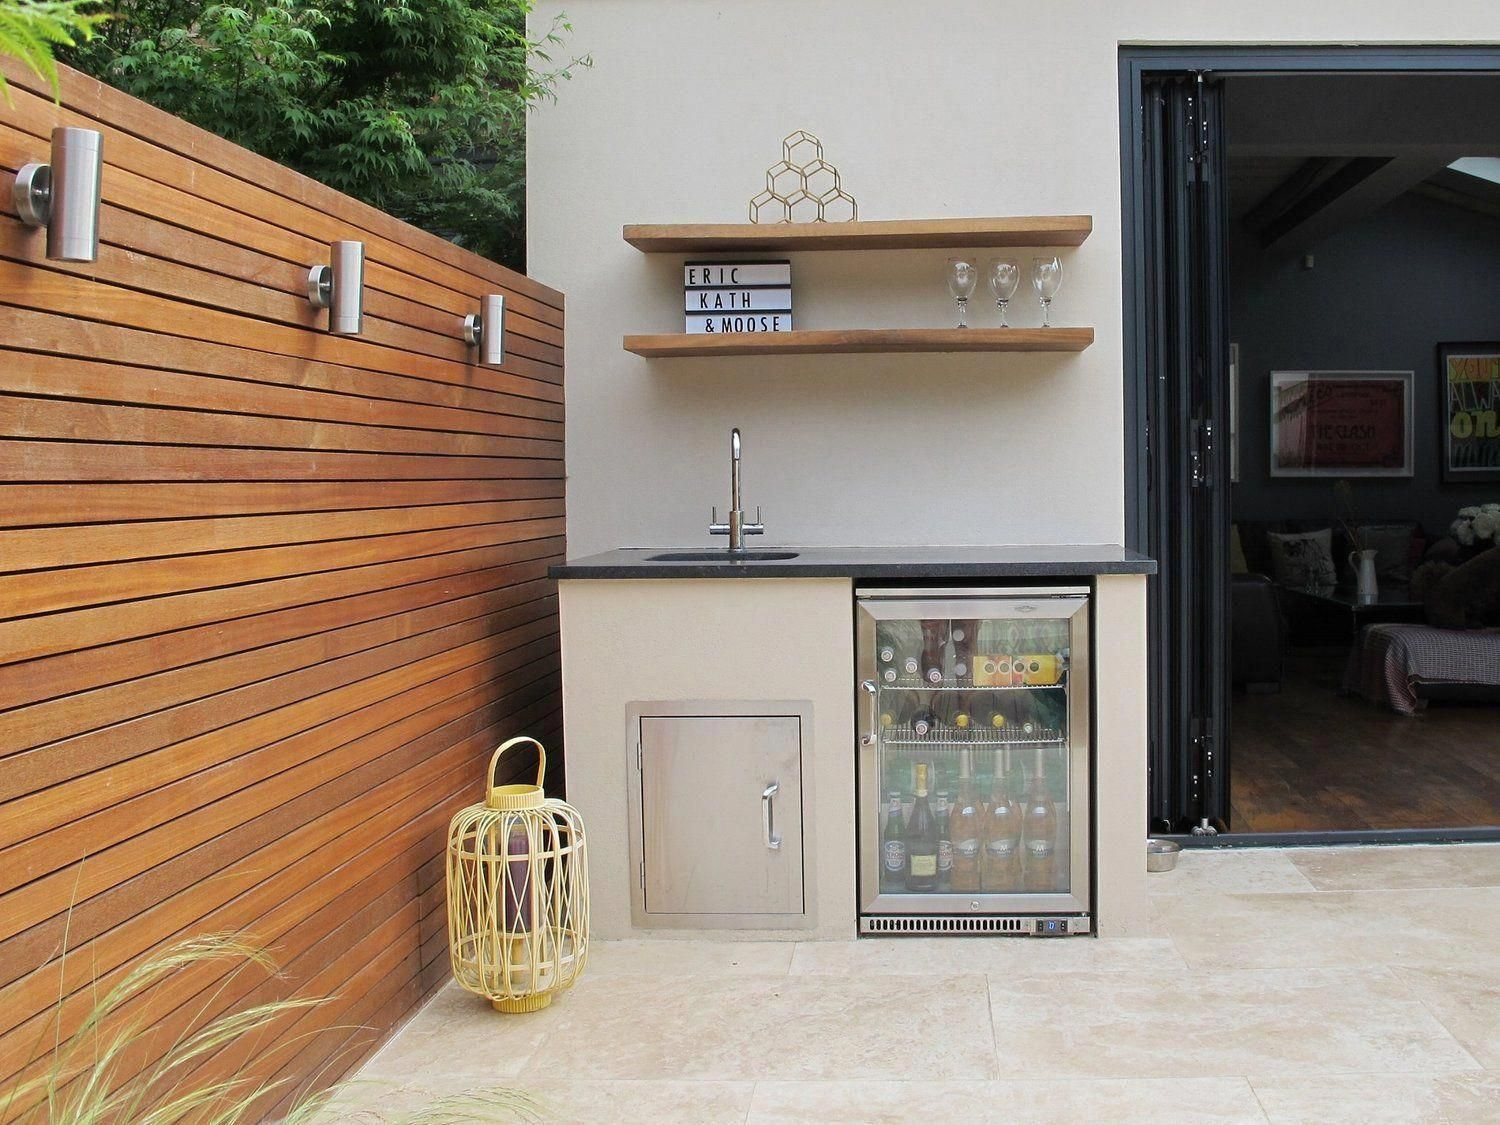 Fantastic Outdoor Kitchen Appliances Counter Tops Information Is Offered On Our Website Read More And You Will Not Be Sorry You Did Outdoor Laundry Rooms Outdoor Sinks Outdoor Kitchen Sink